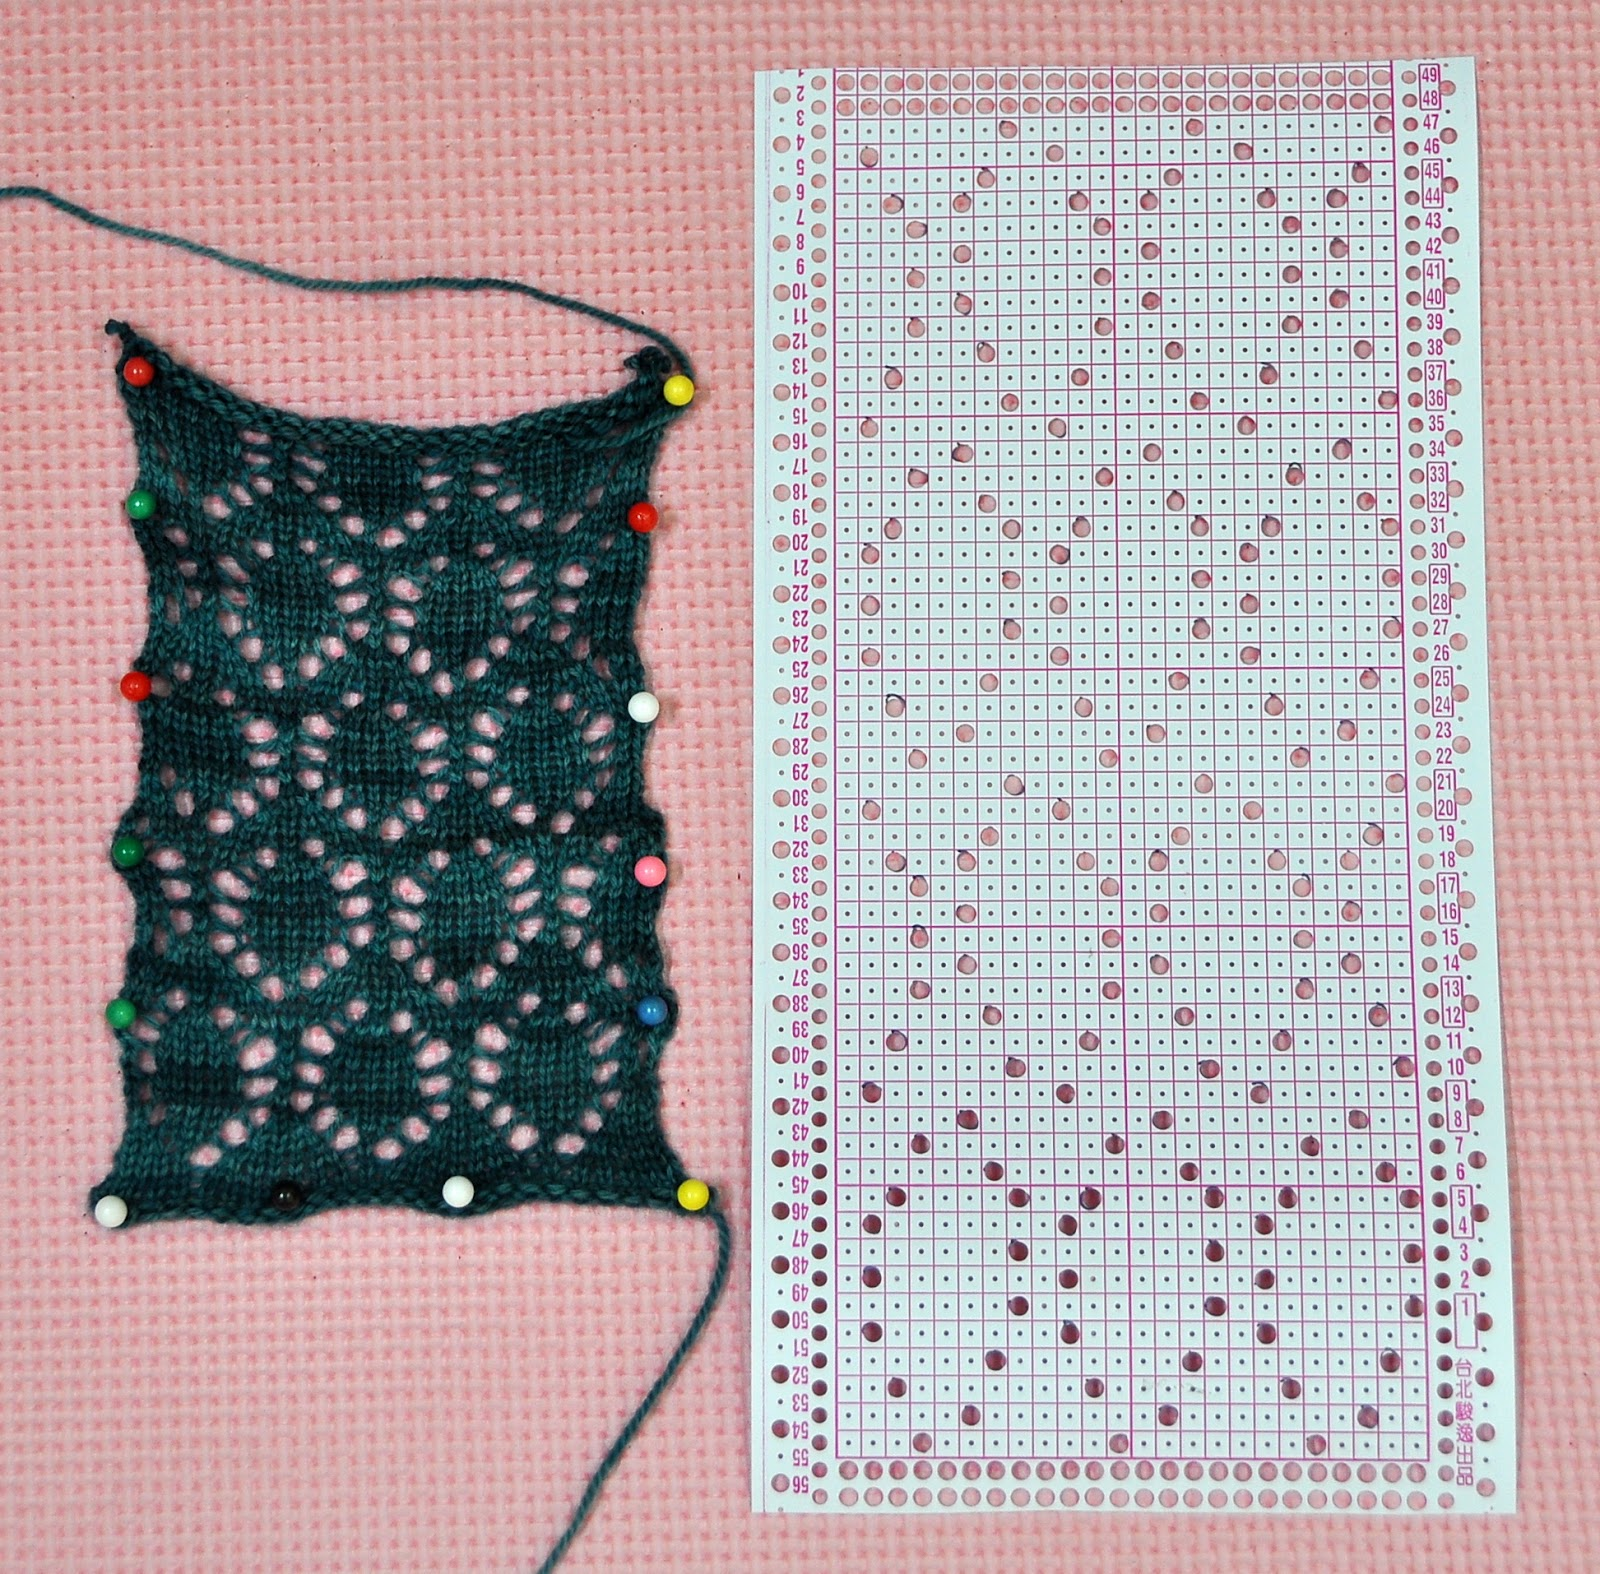 KnitterPat: My First Punch Card